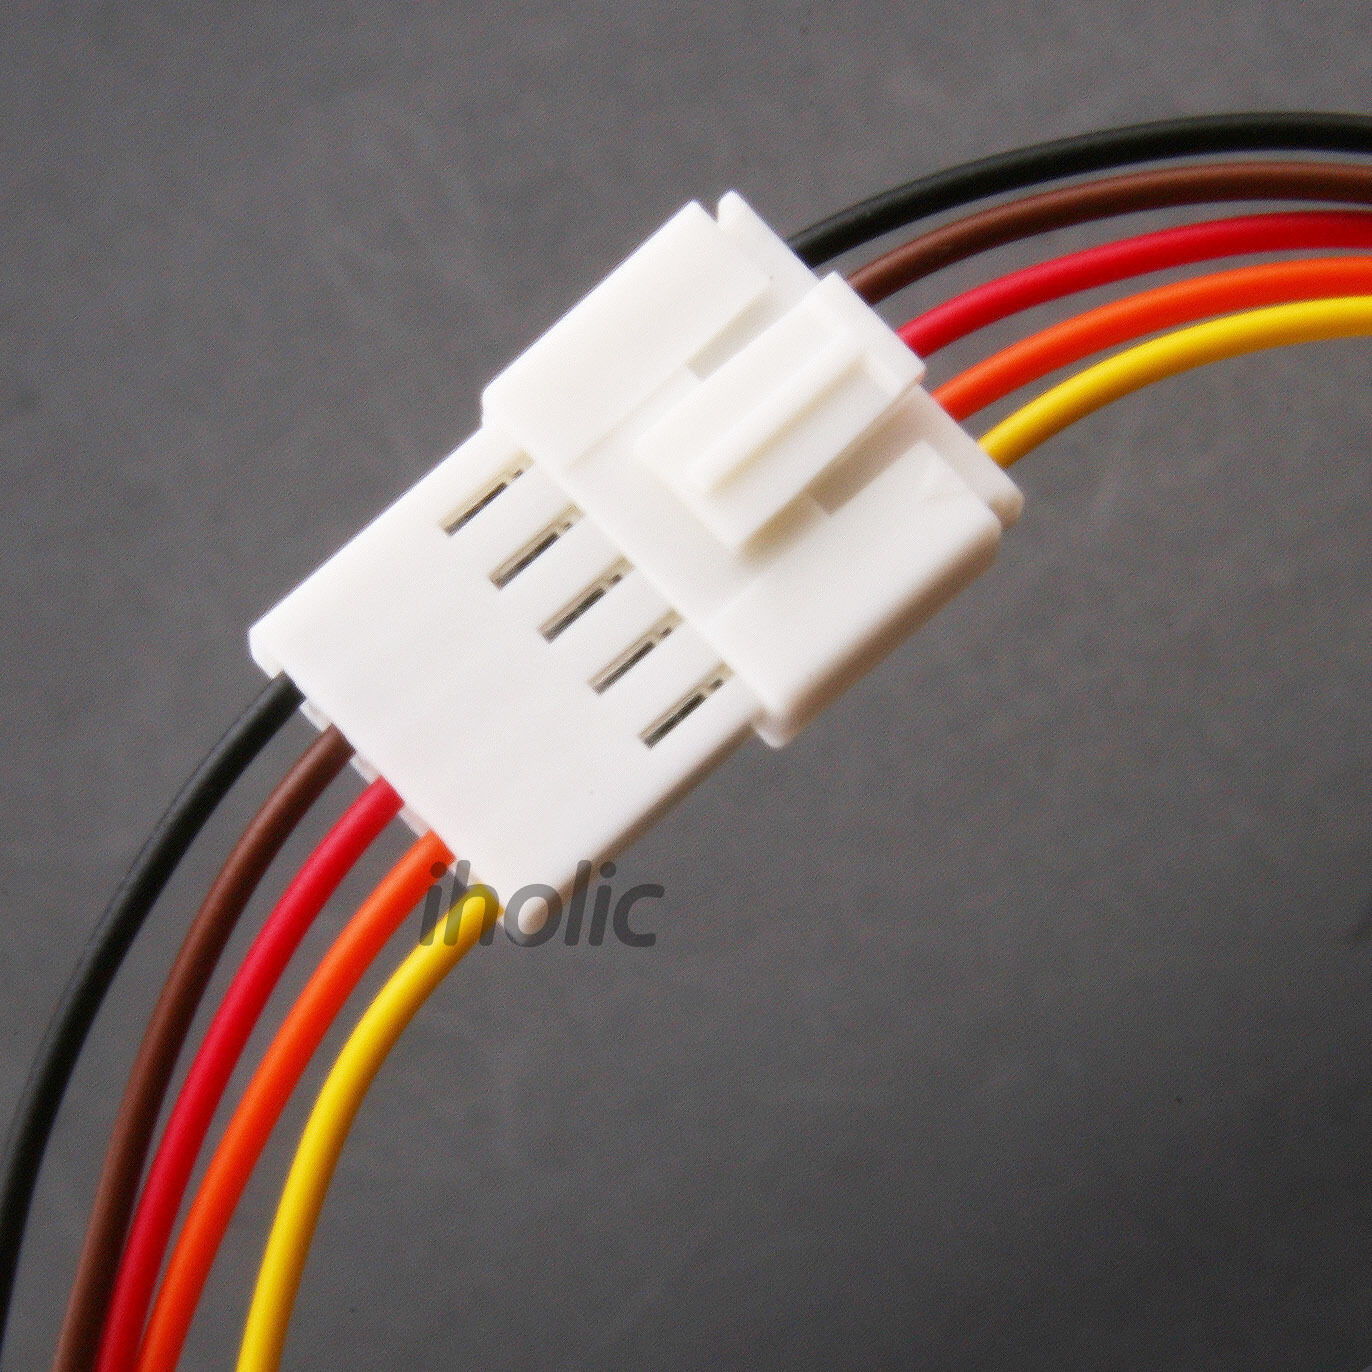 1pcs Small 5 pin terminal lead wire harness - Jack and Plug 5 Pin Wire &